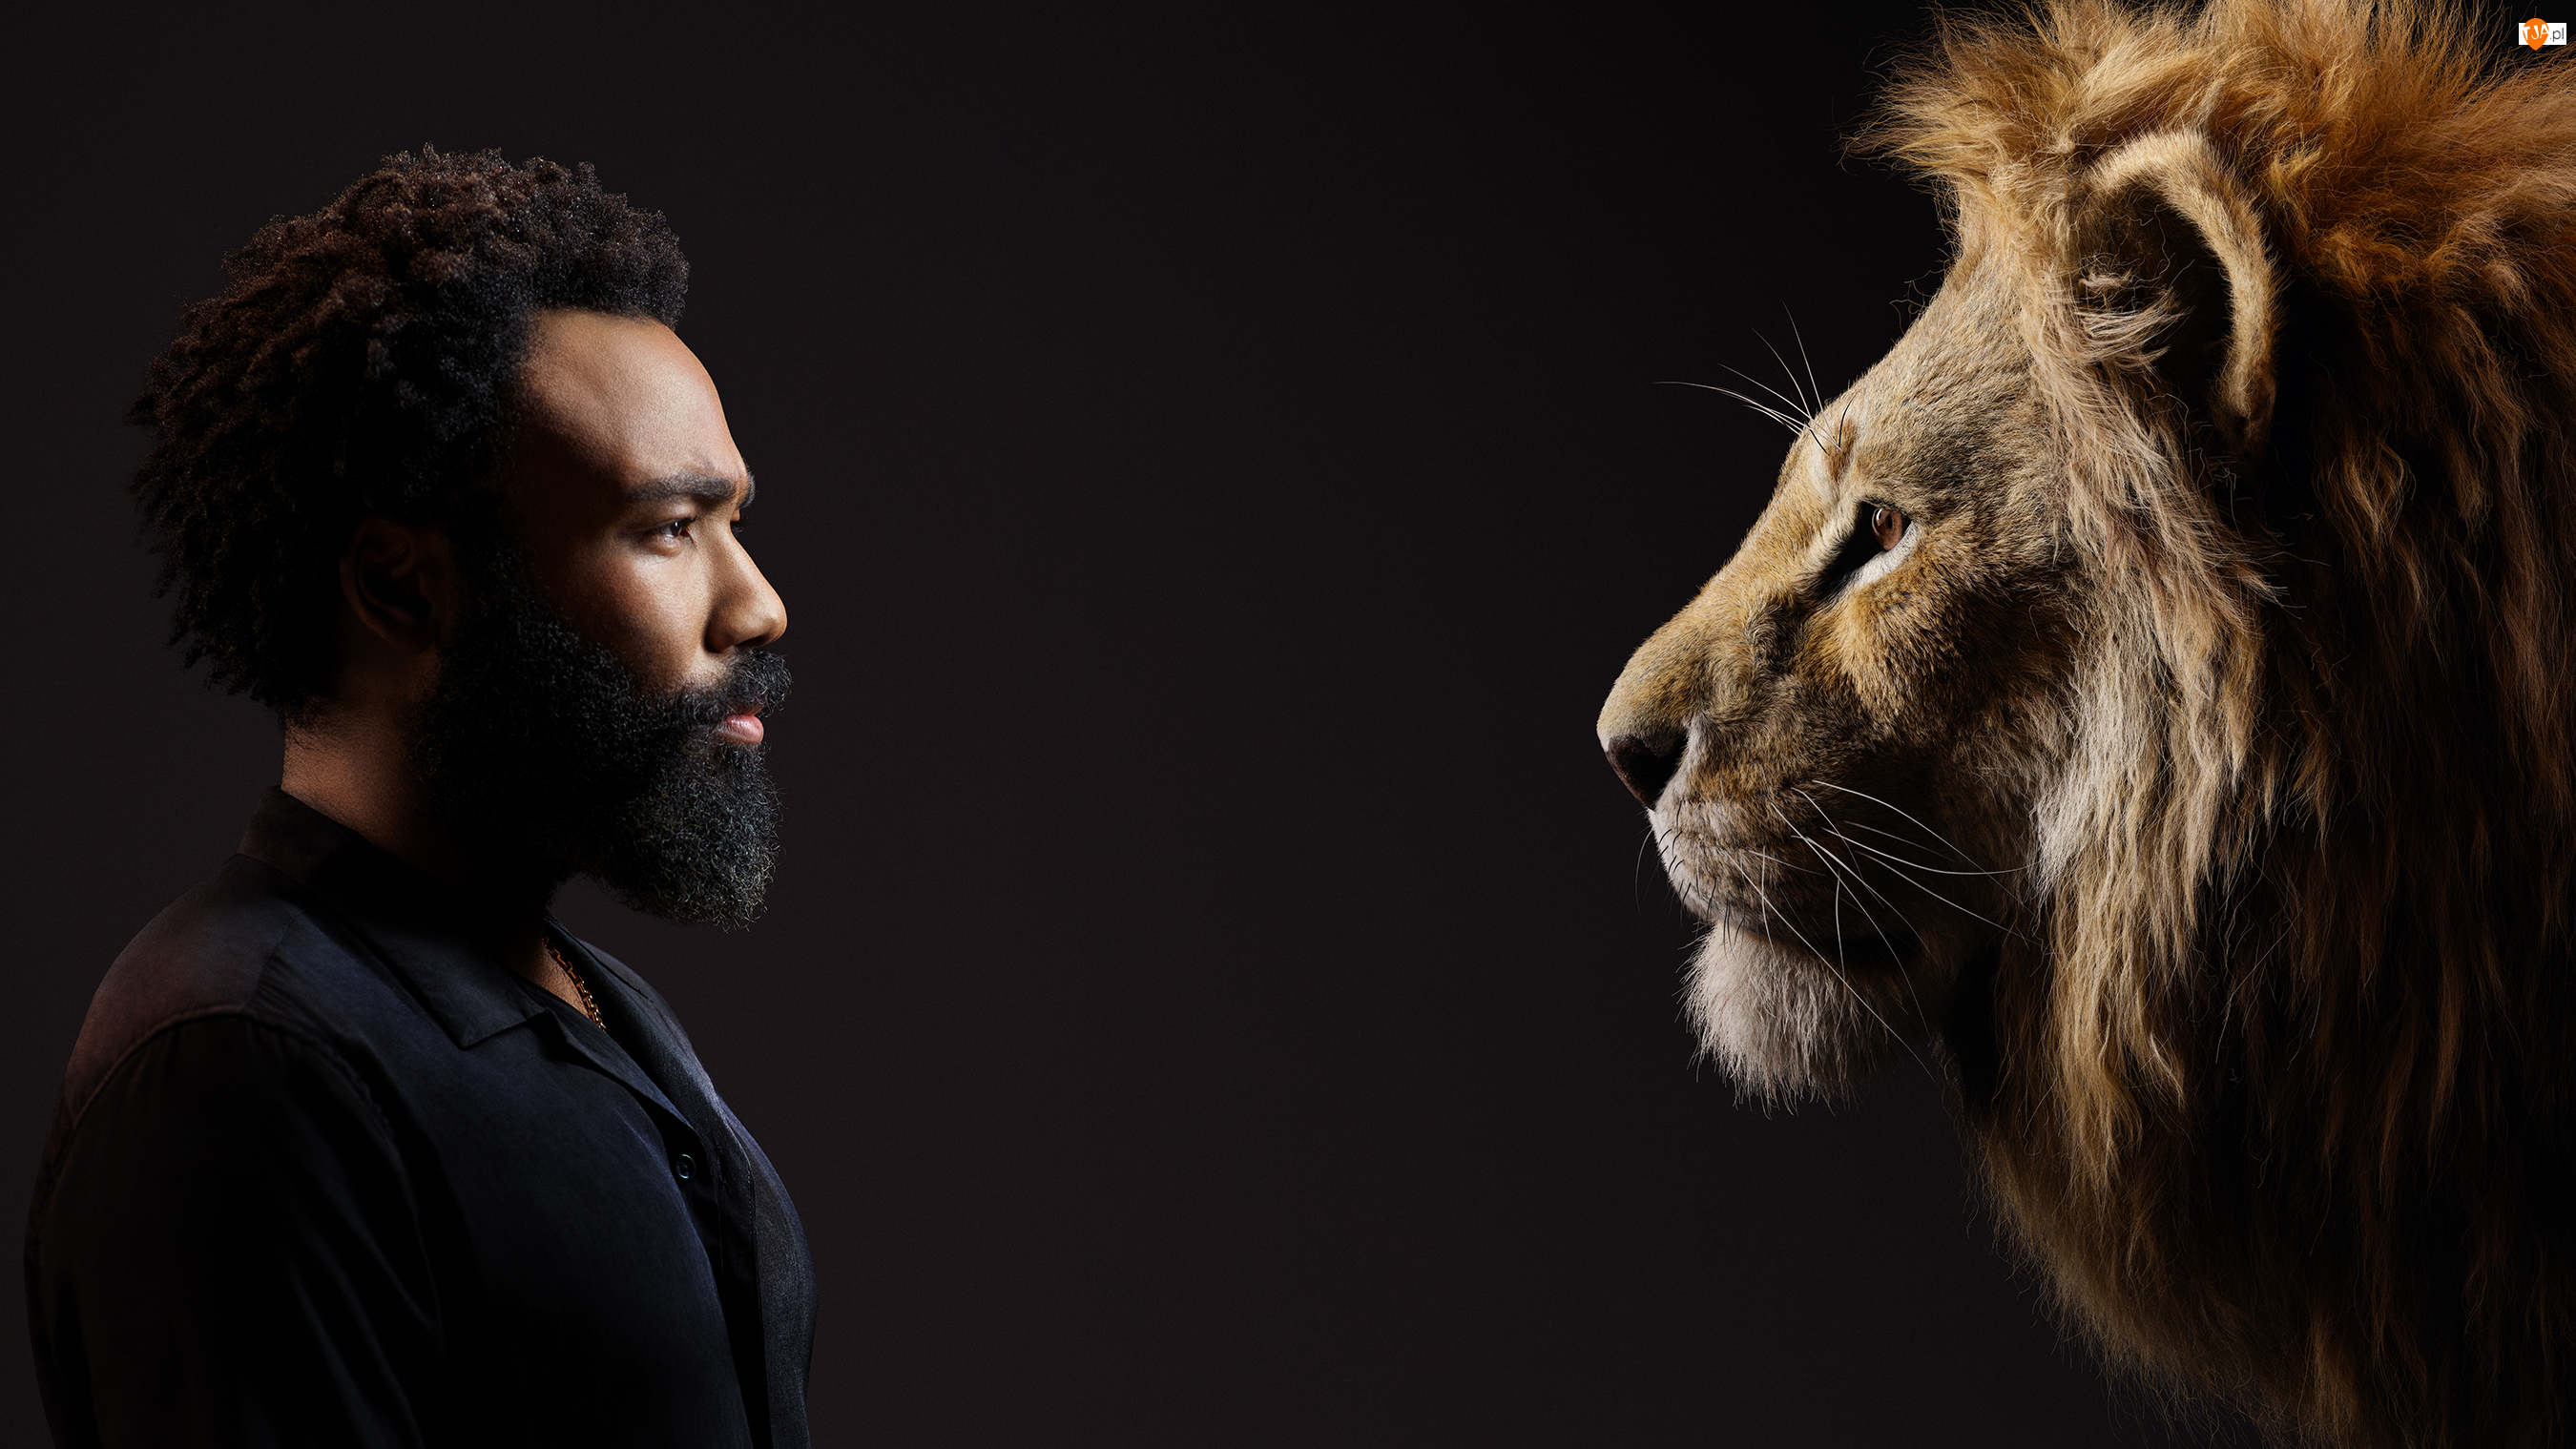 Król Lew, Film, Aktor, Lew, The Lion King, Donald Glover